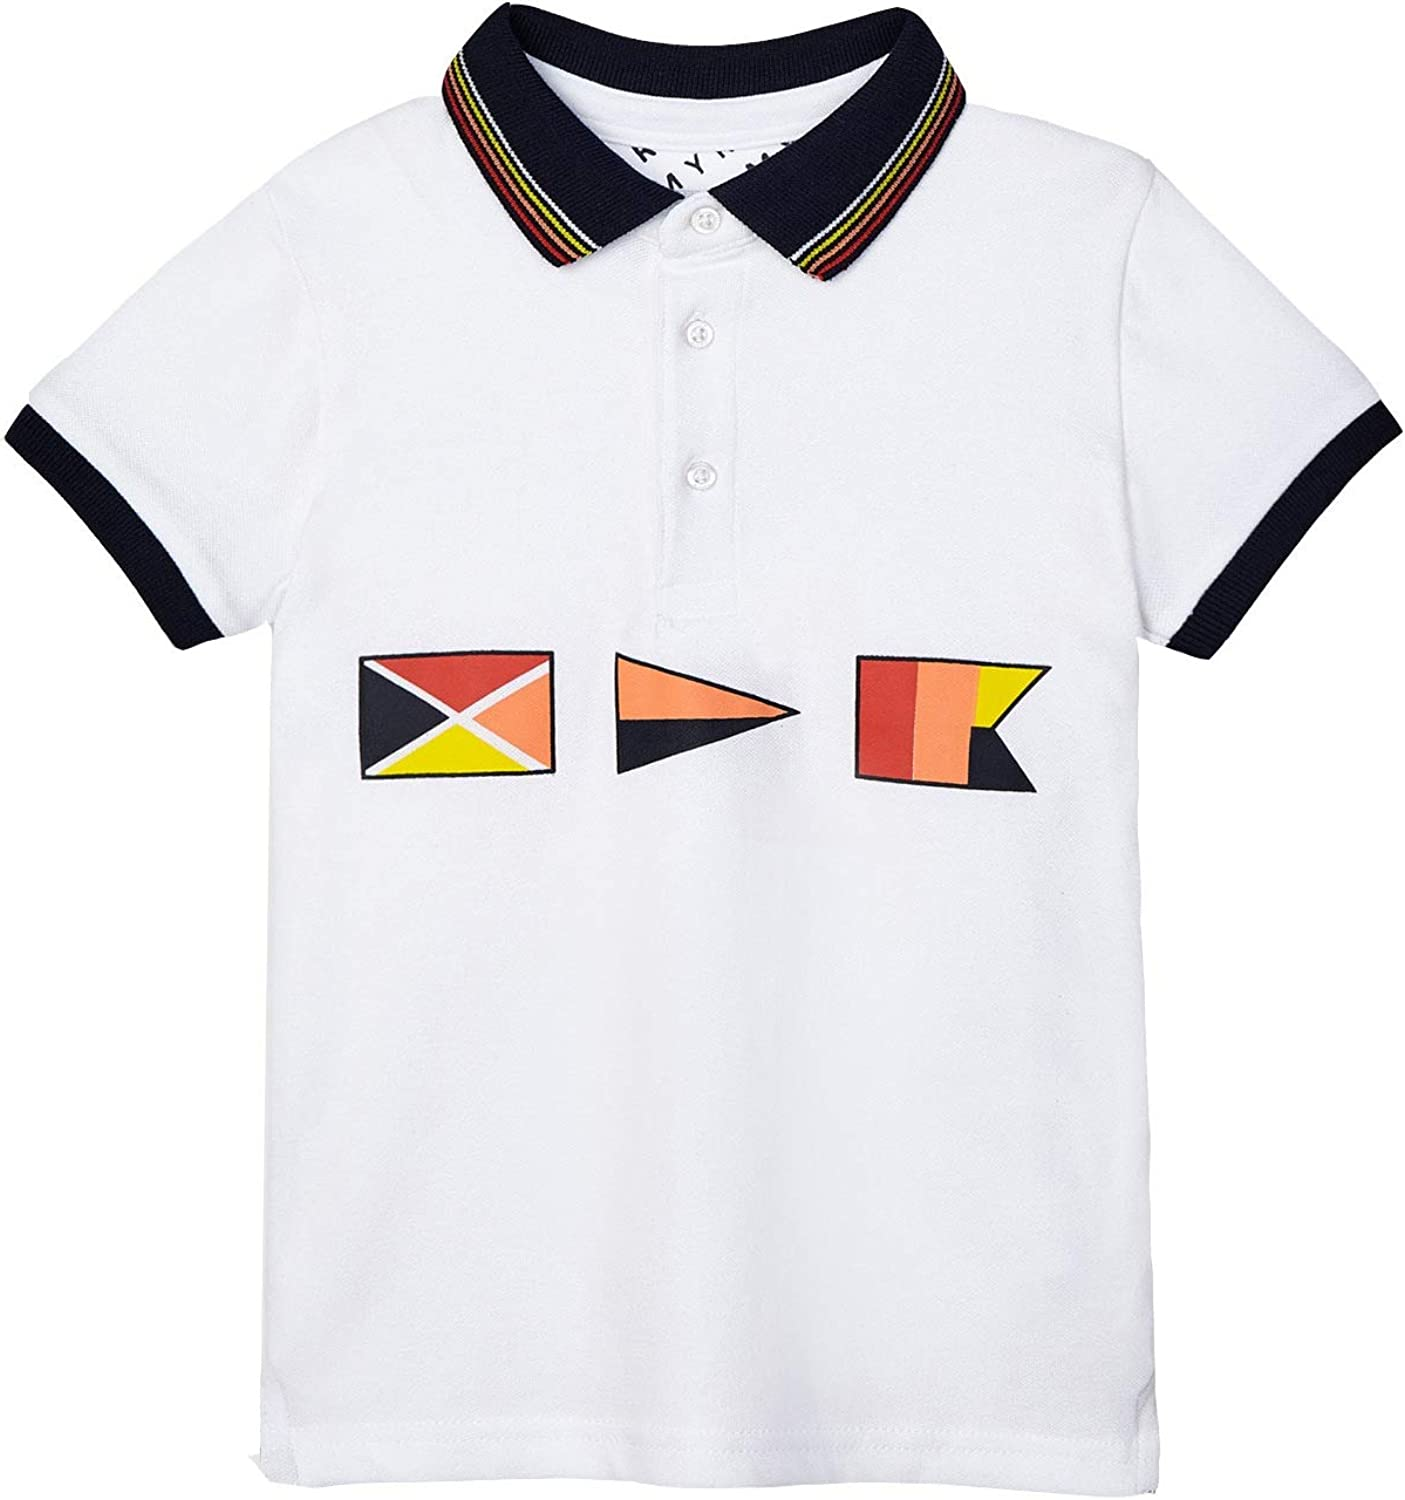 Mayoral - Printed s/s Polo for Boys - 3105, White